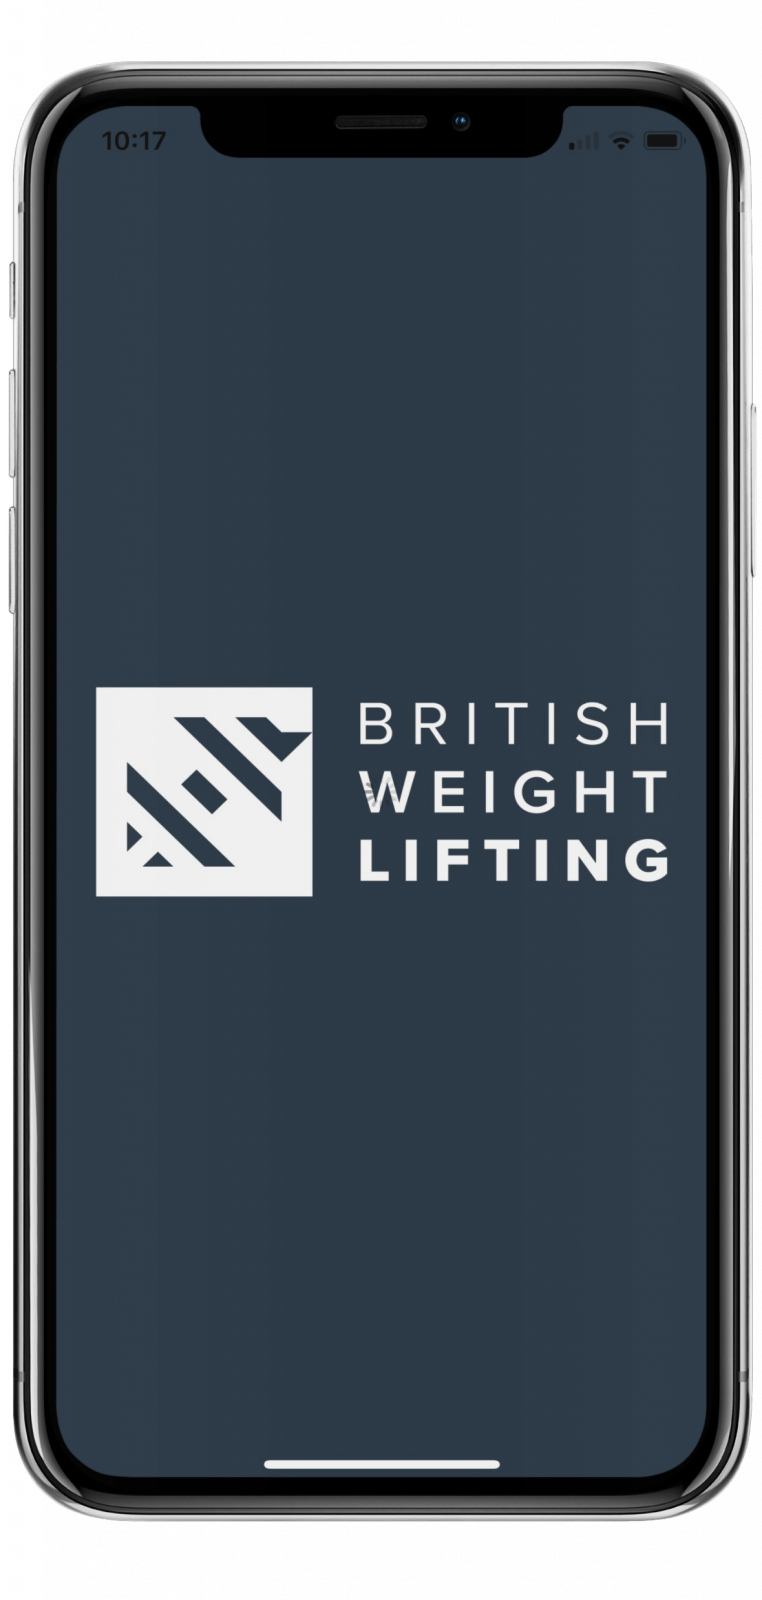 British Weightlifting - Moodle Mobile App